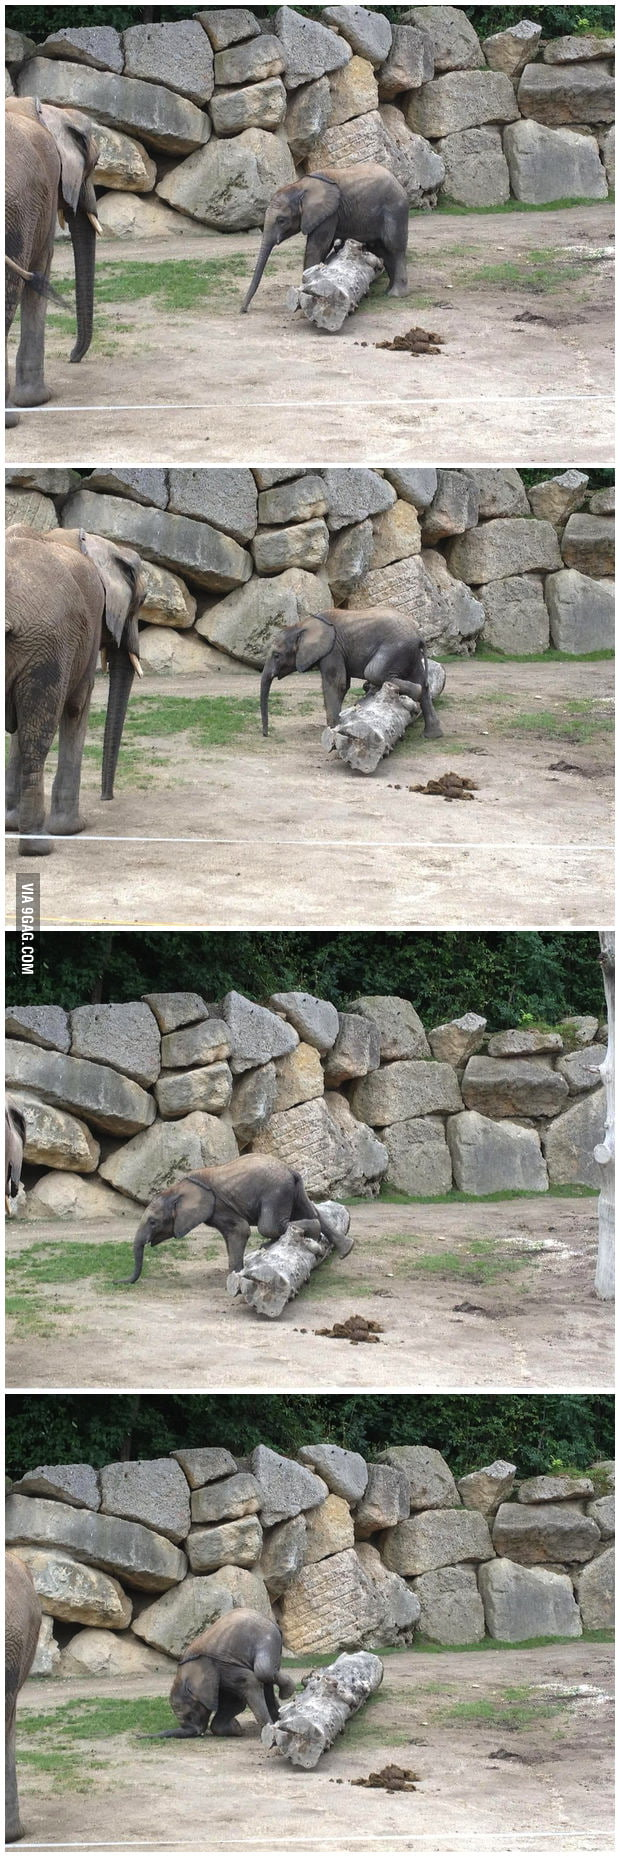 Photos of a baby elephant falling over